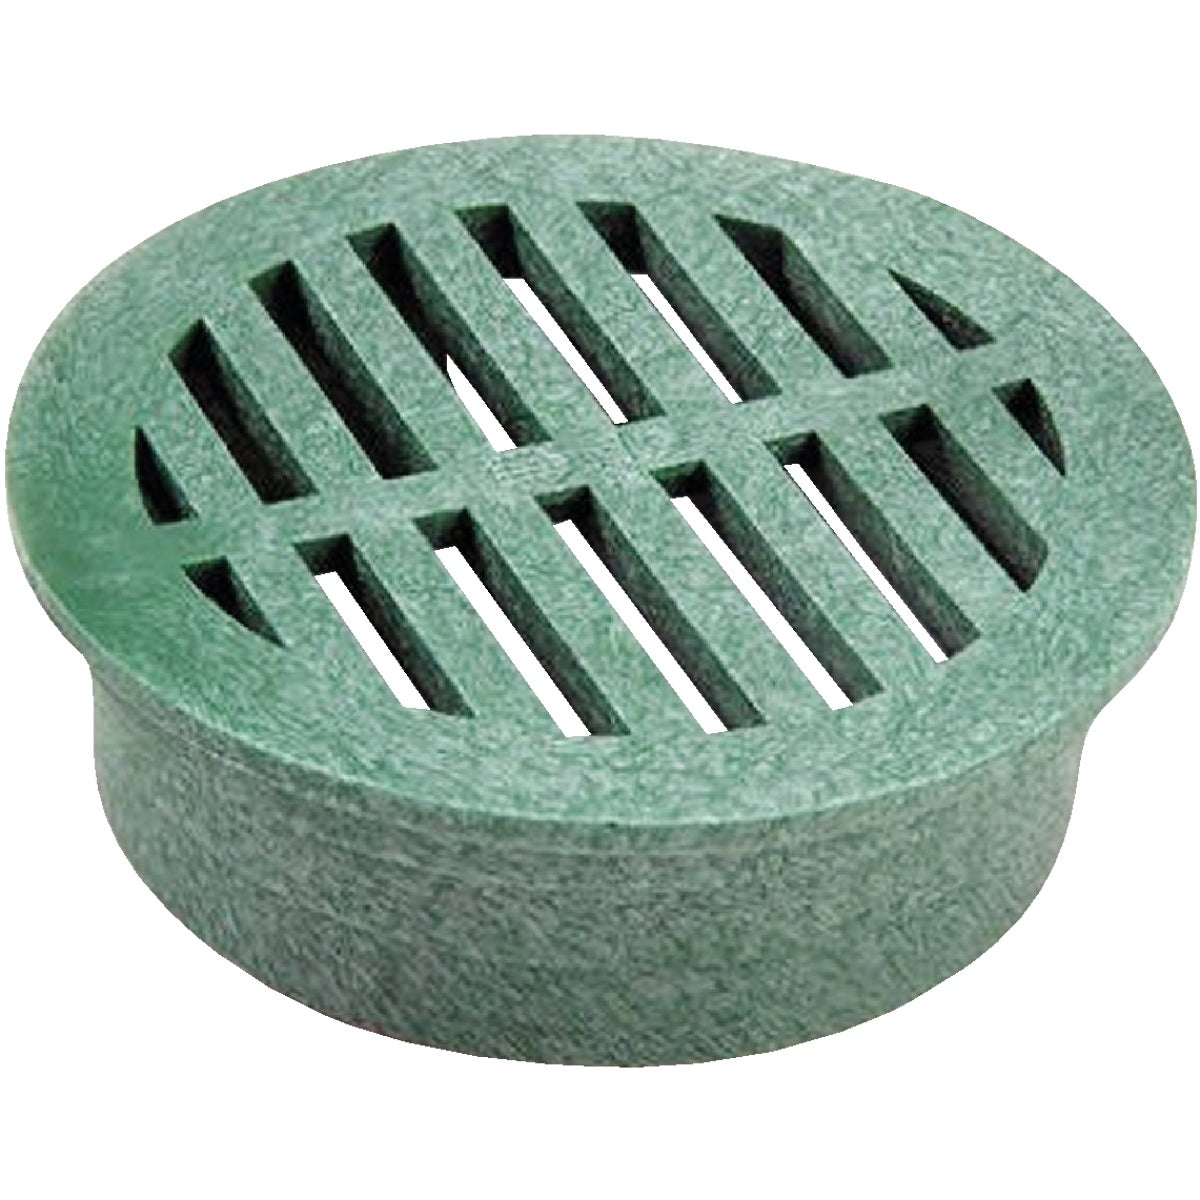 "3"" GREEN ROUND GRATE - 16 by National Diversified"